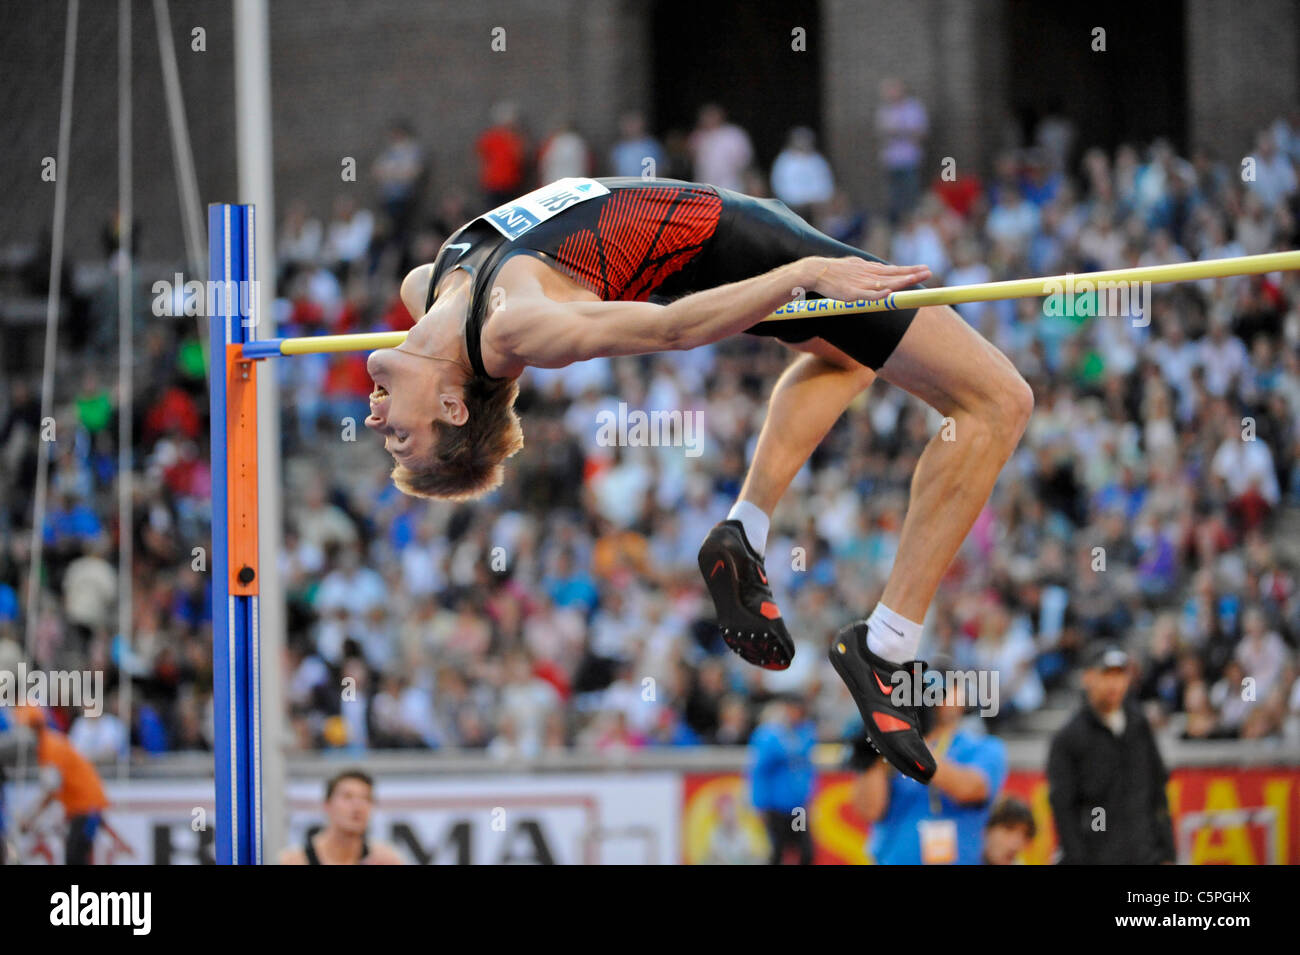 Stockholm 2011 07 29 DN-galan Diamond League - Ivan Ukhov RUS wins the high jump with 2.34 meter - - Stock Image